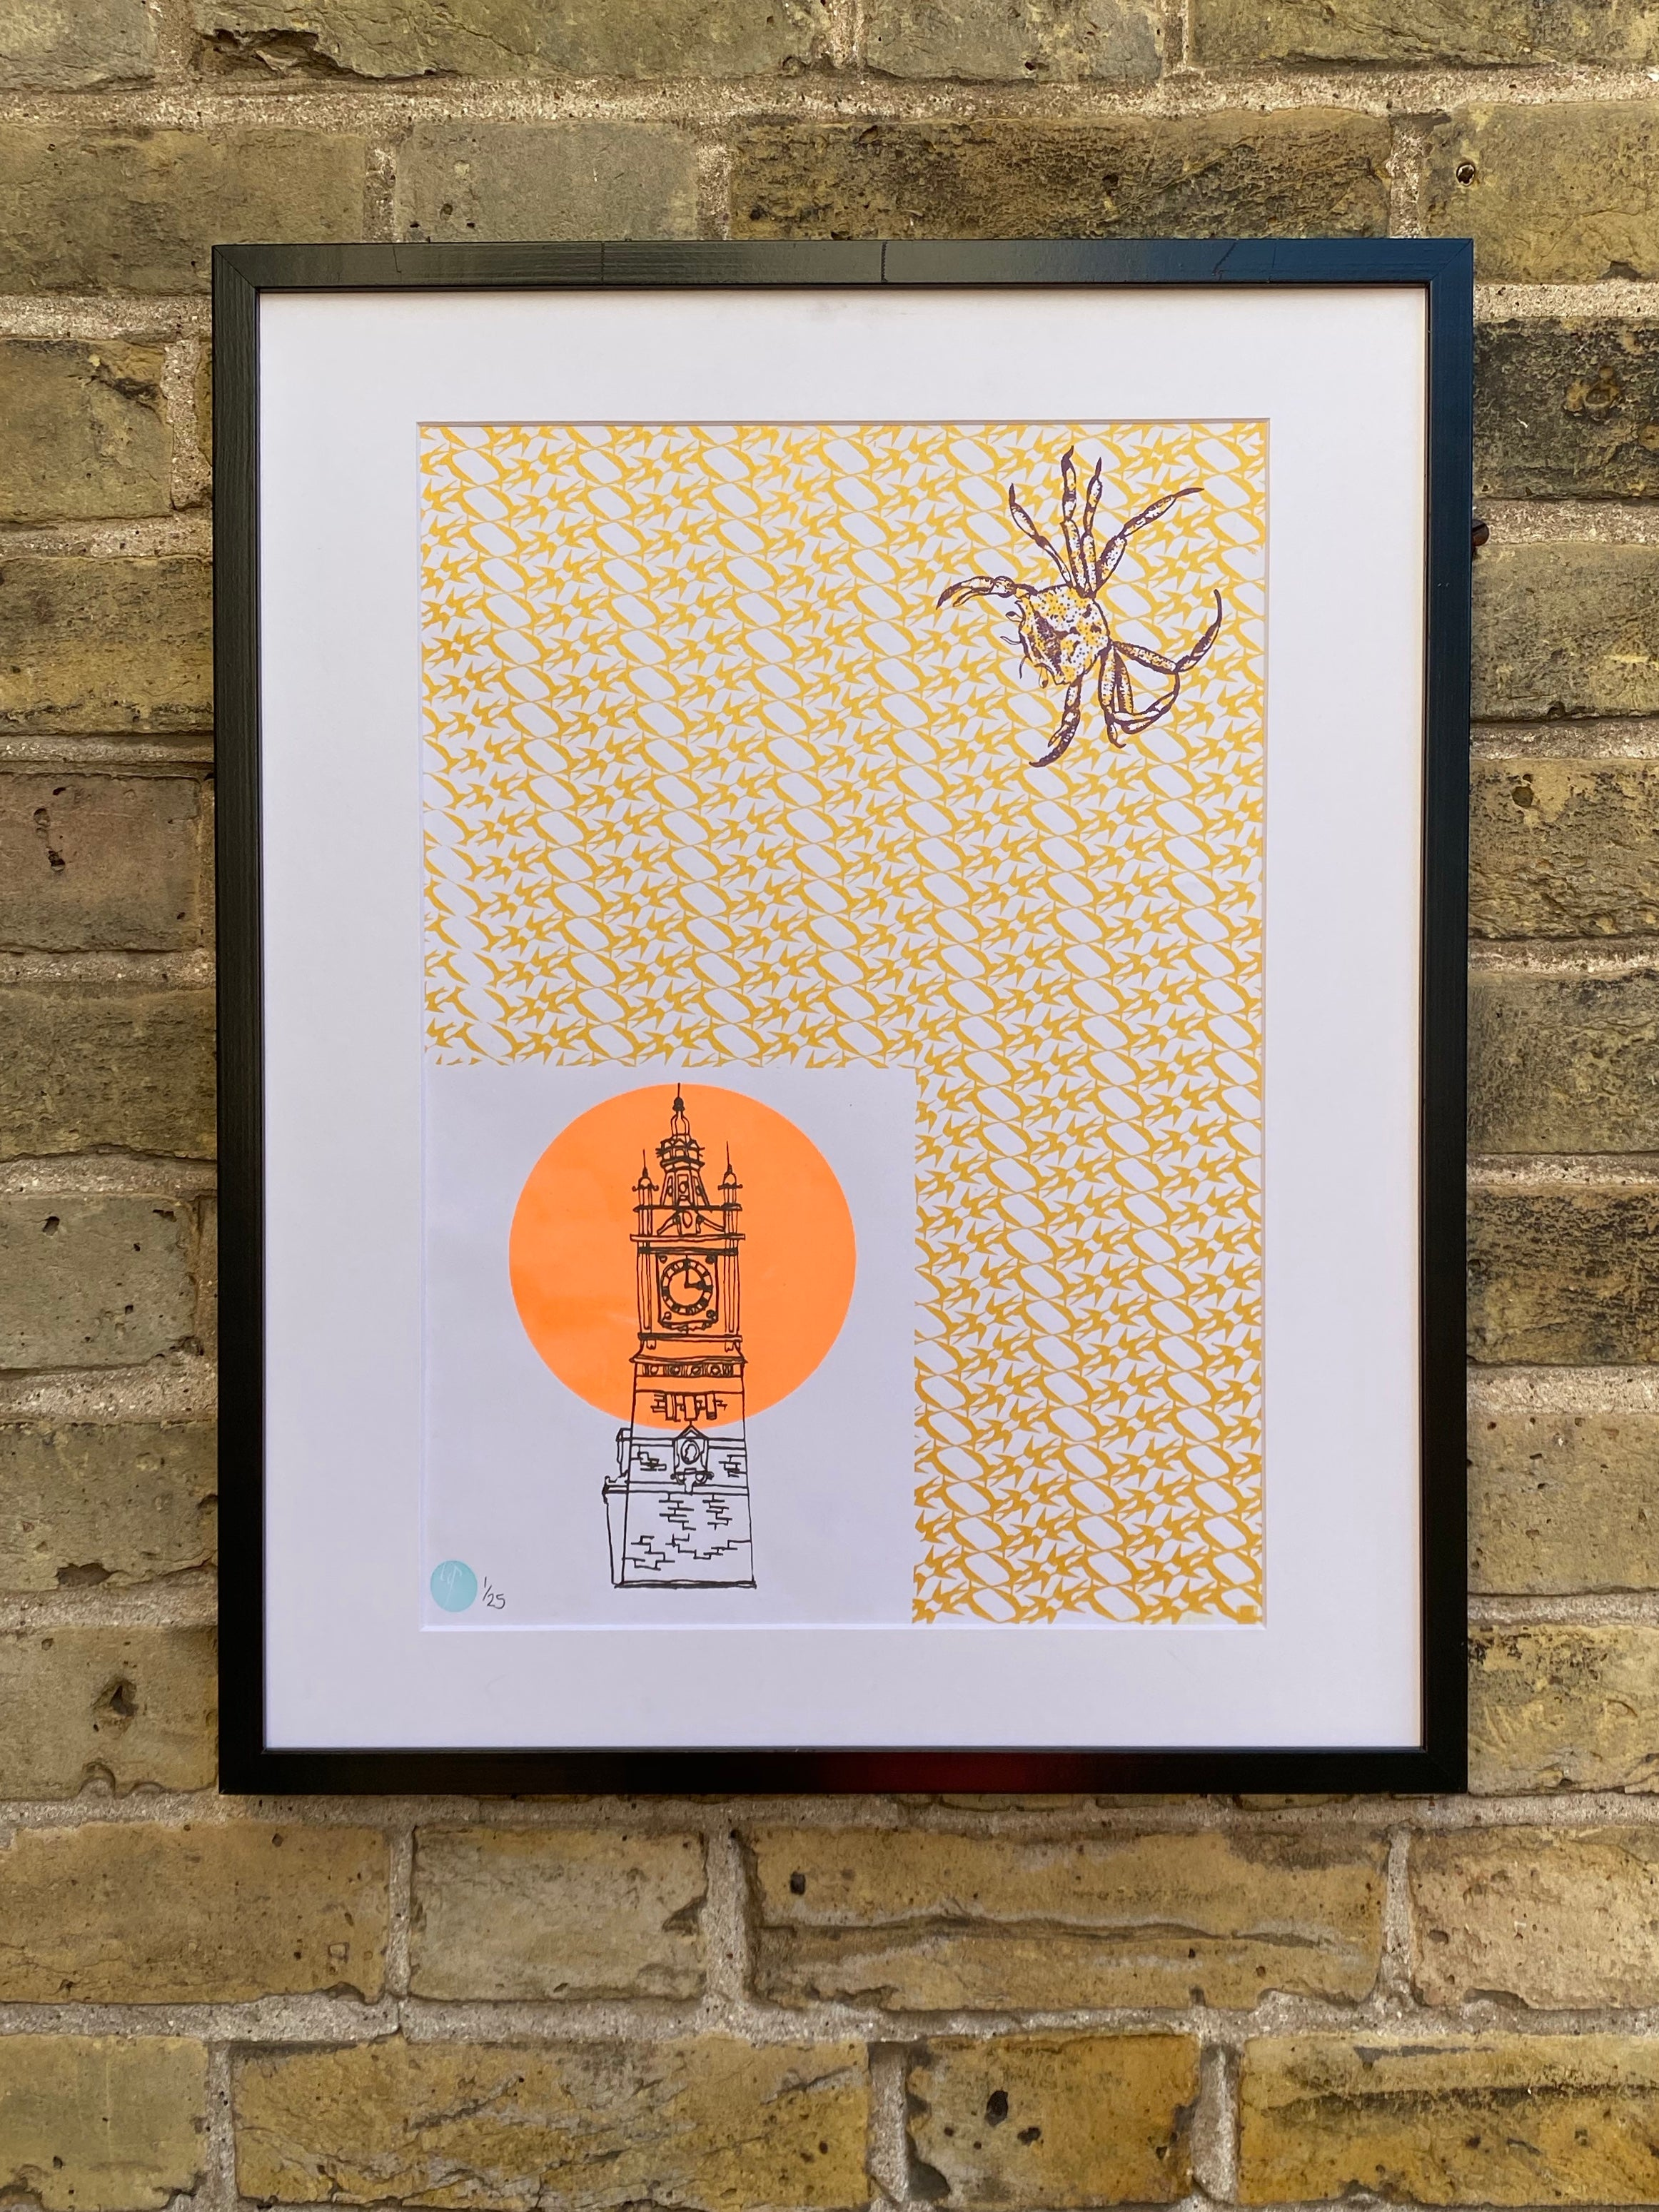 Neon and Metallic 4 colour Margate Print, handprinted on recycled paper